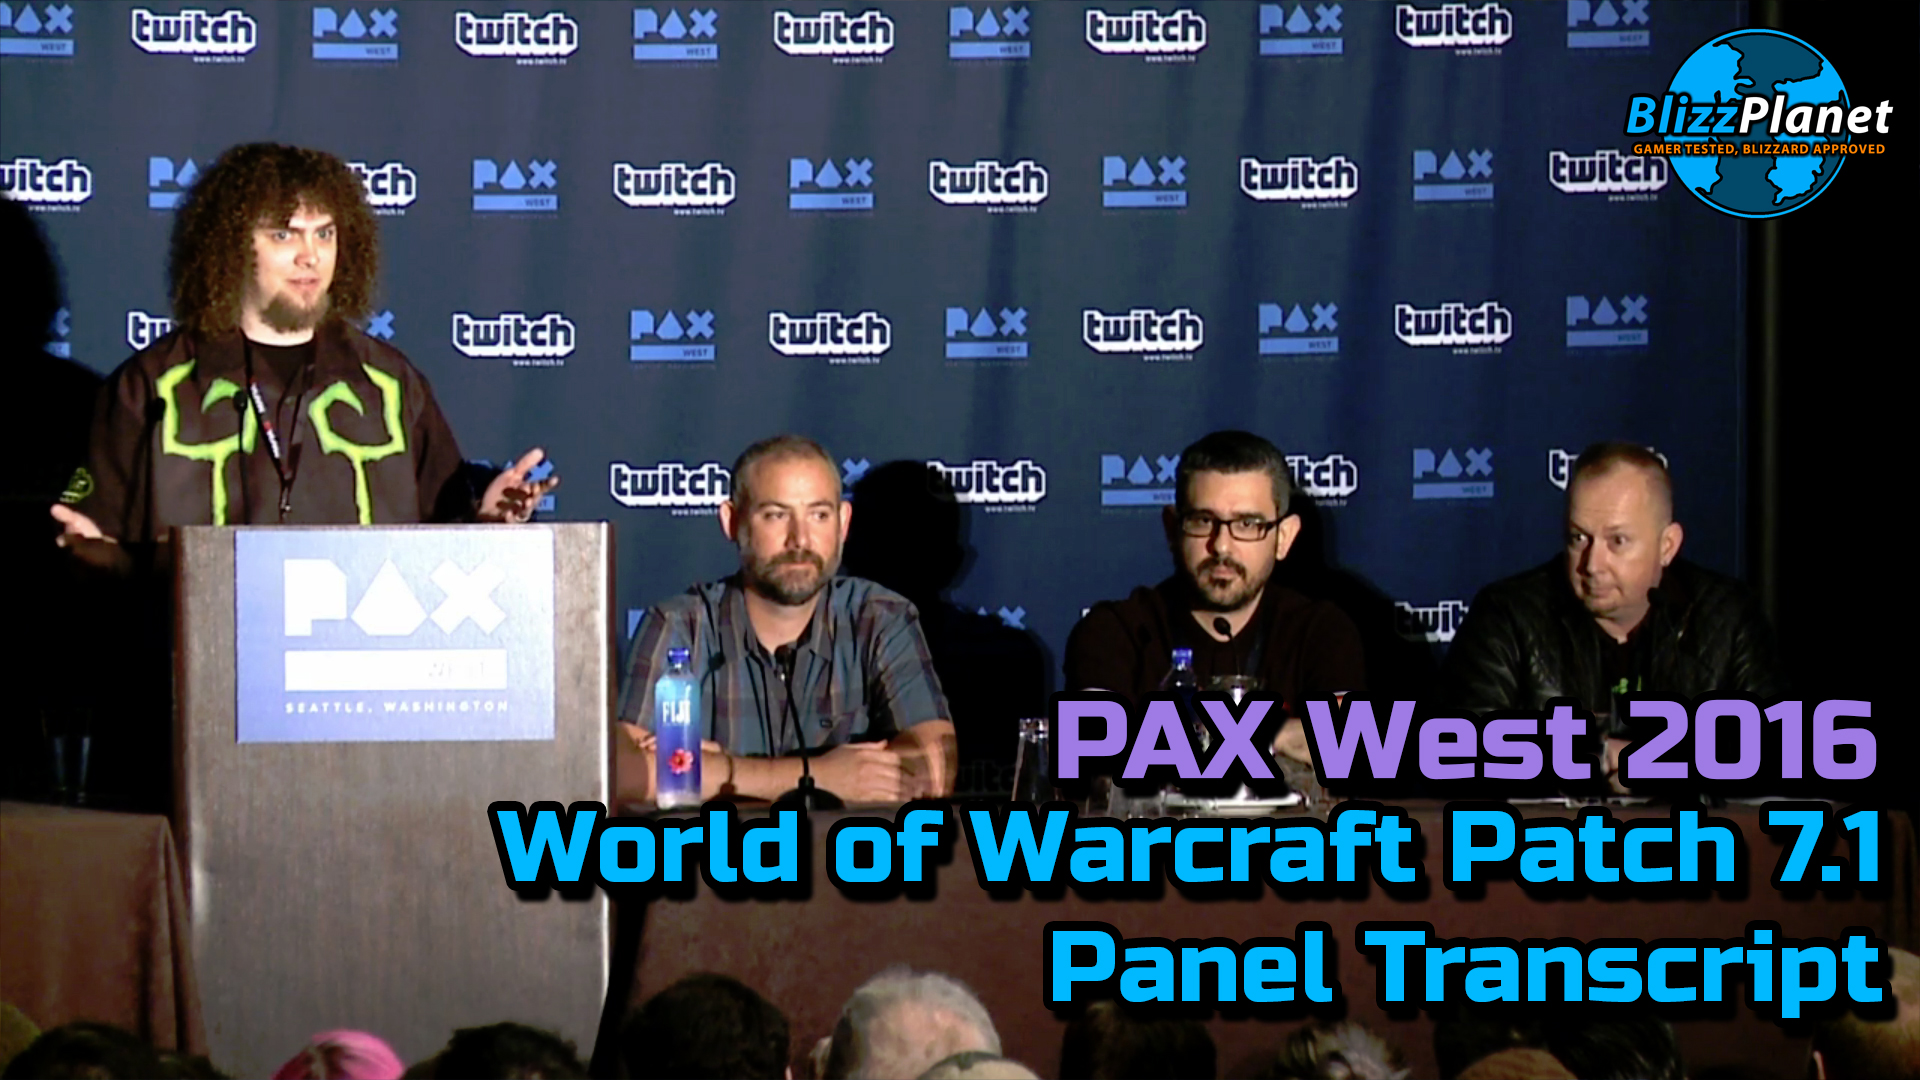 2016-pax-west-world-of-warcraft-the-invasion-continues-panel-transcript